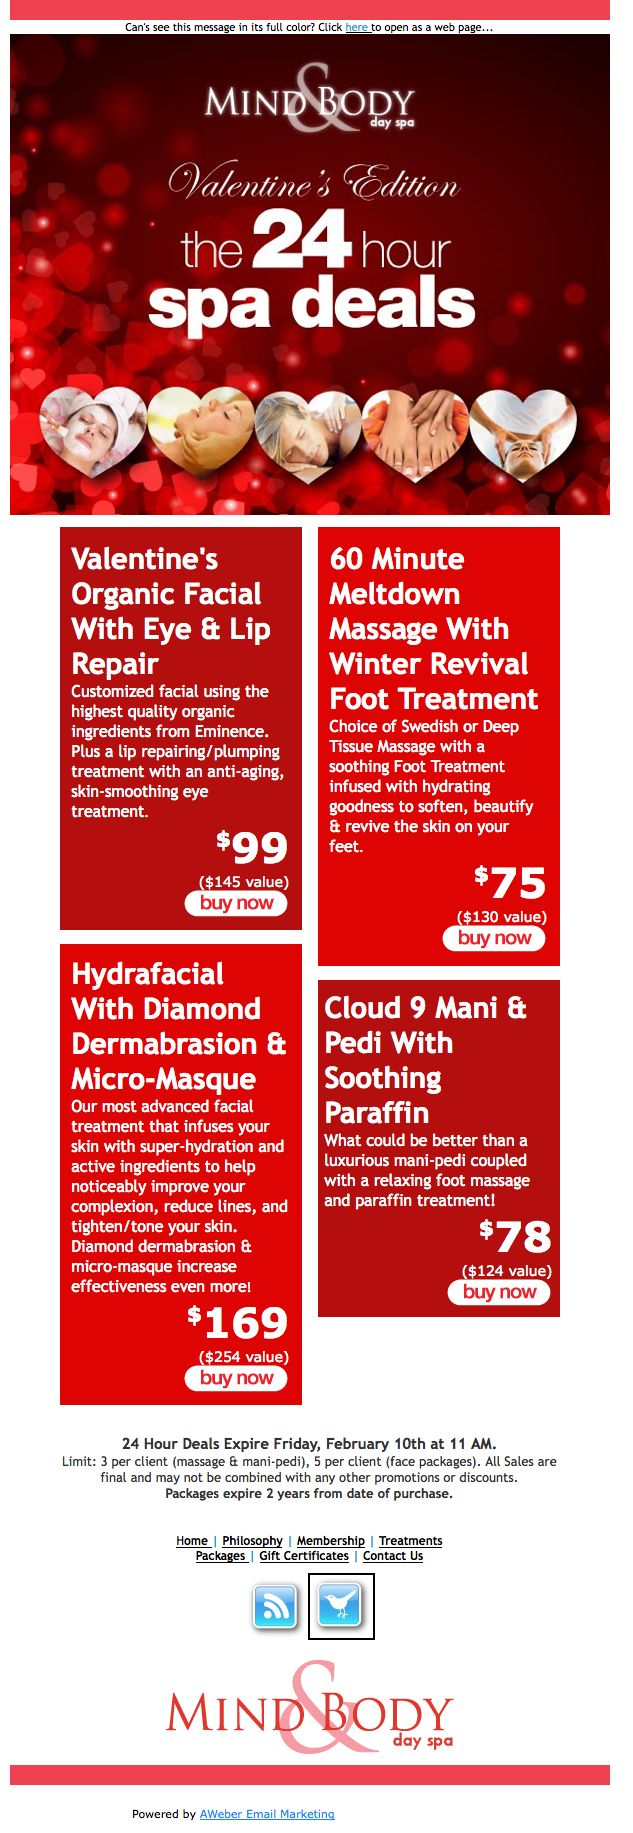 Mind  Body Day Spa promoted their 24-hour sale on spa treatments with this lovely email. www.mindandbodydayspa.com